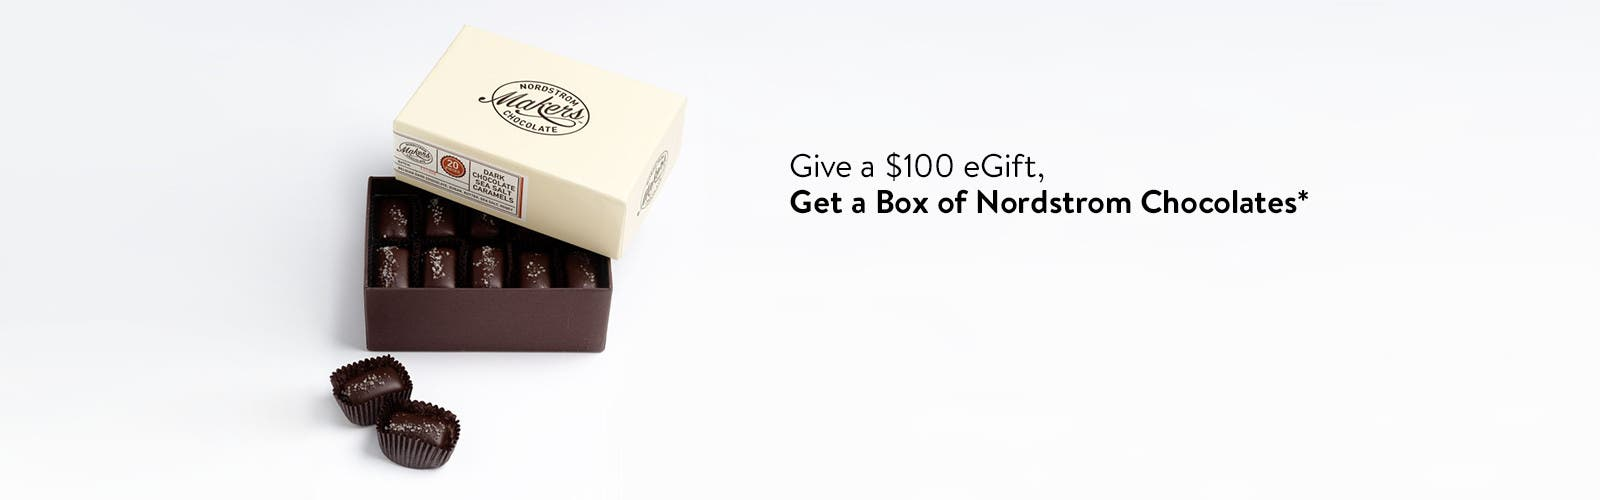 Give a $100 eGift, get a box of chocolates.